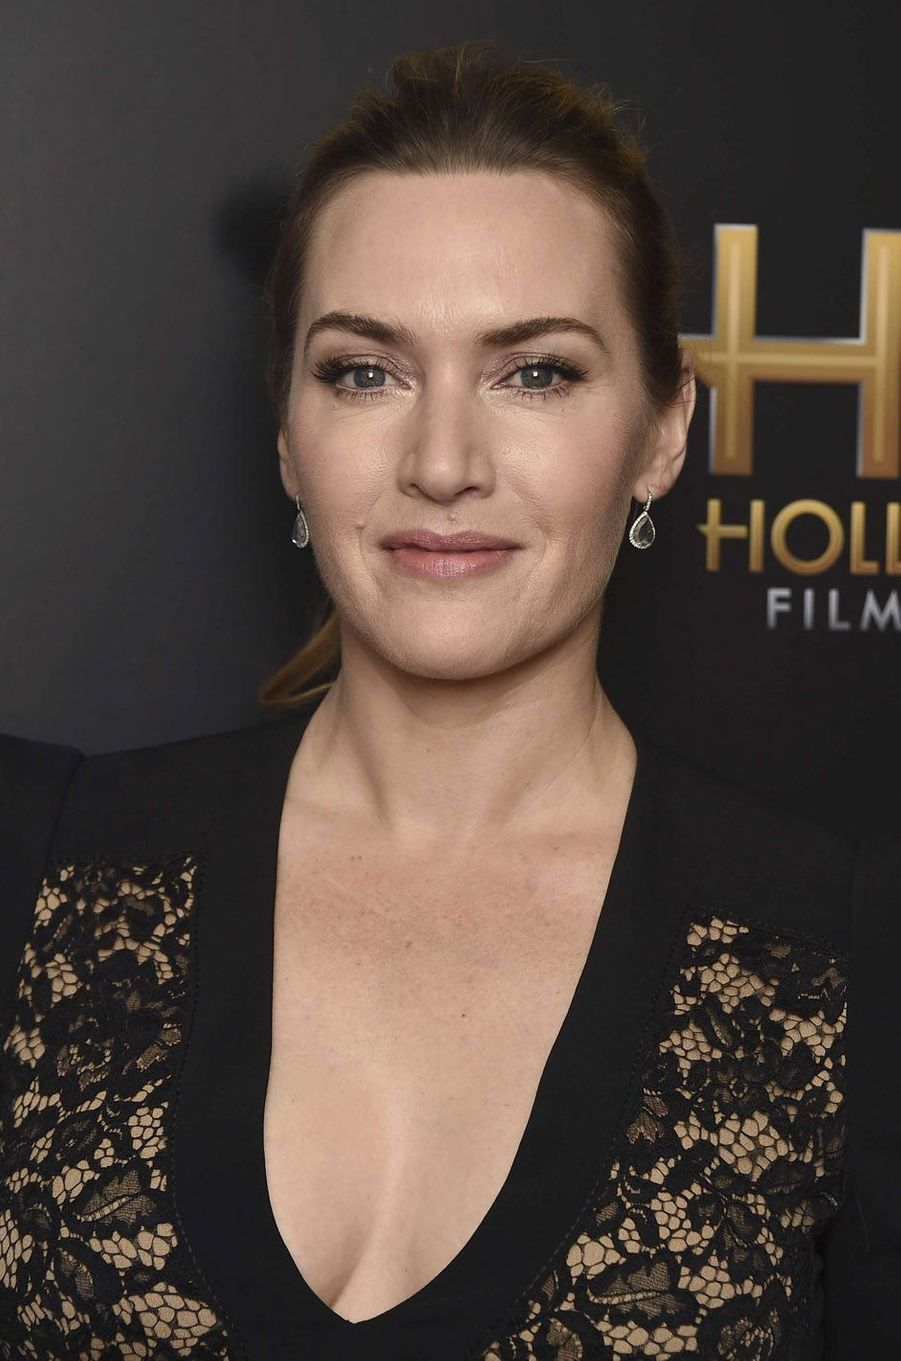 Kate Winslet à la cérémonie des Hollywood Film Awards à Beverly Hills, le 5 novembre 2017.